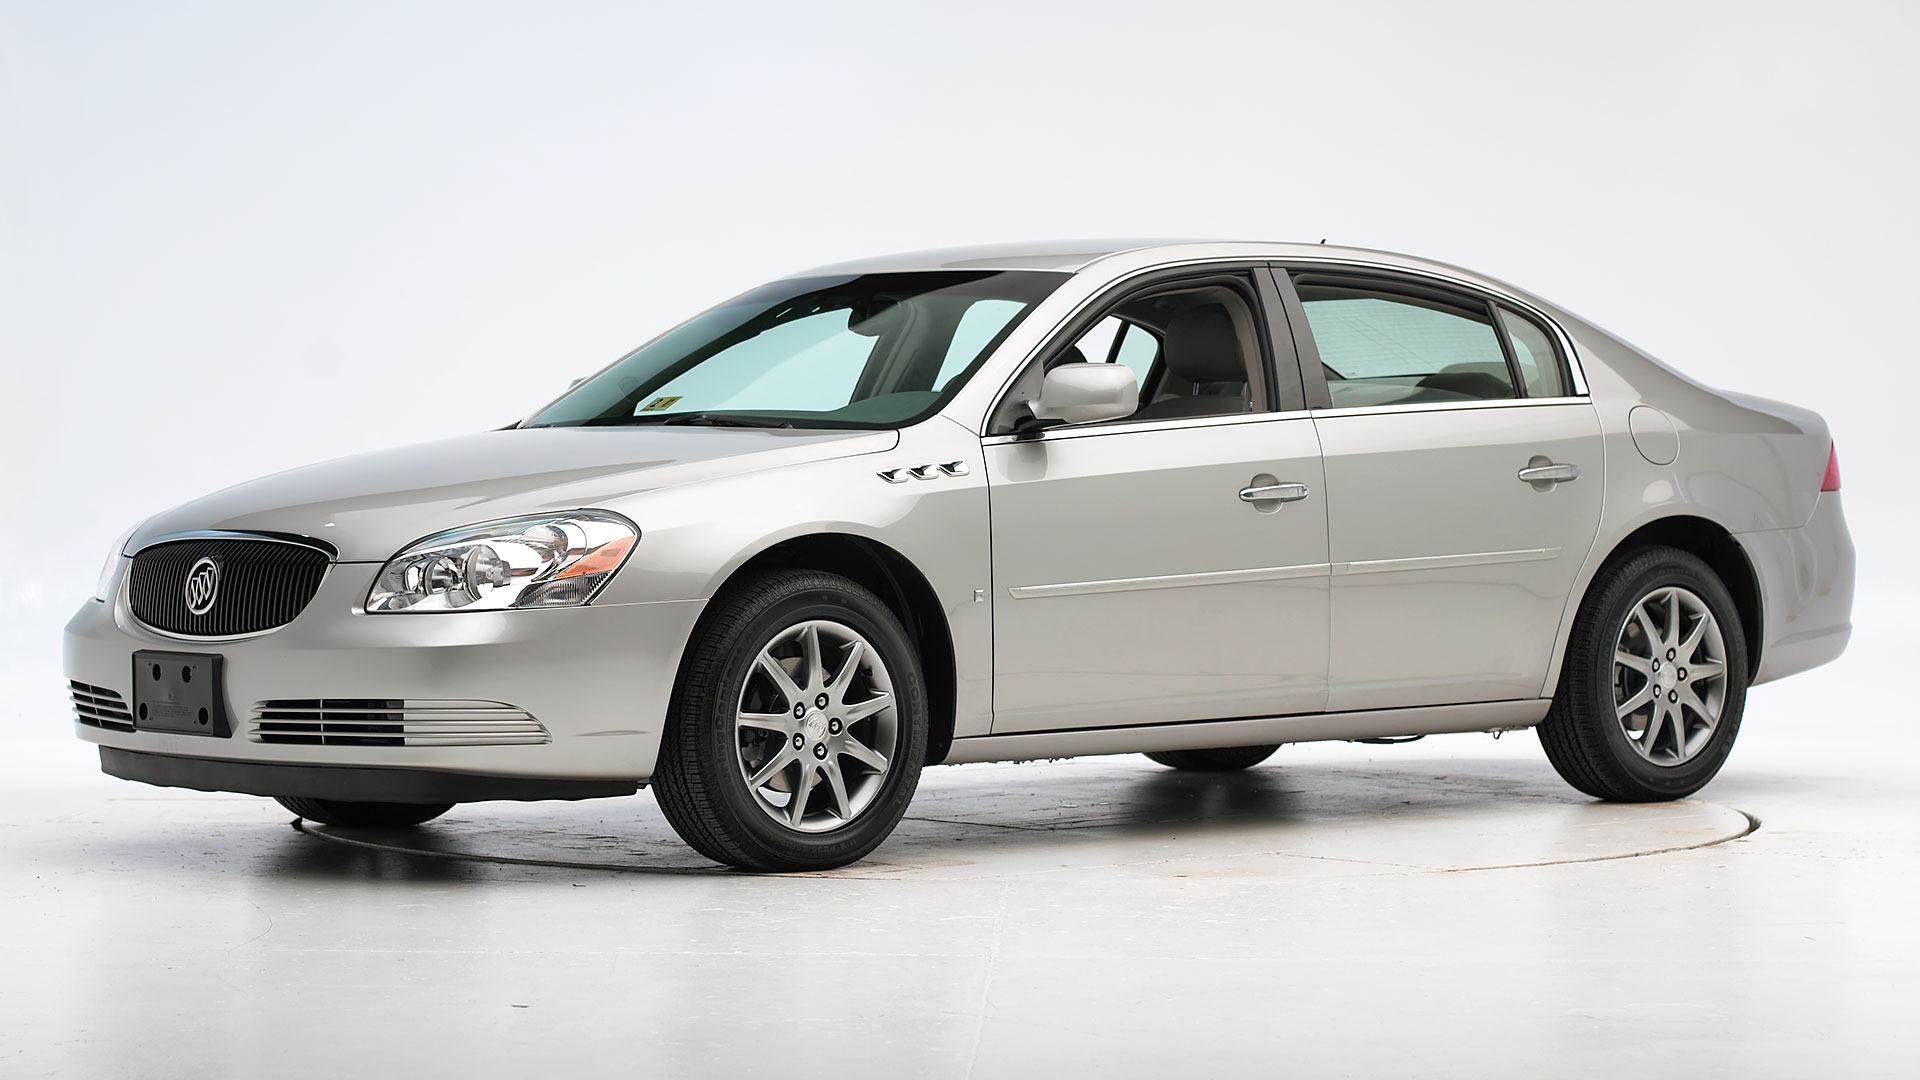 2010 Buick Lucerne 4-door sedan